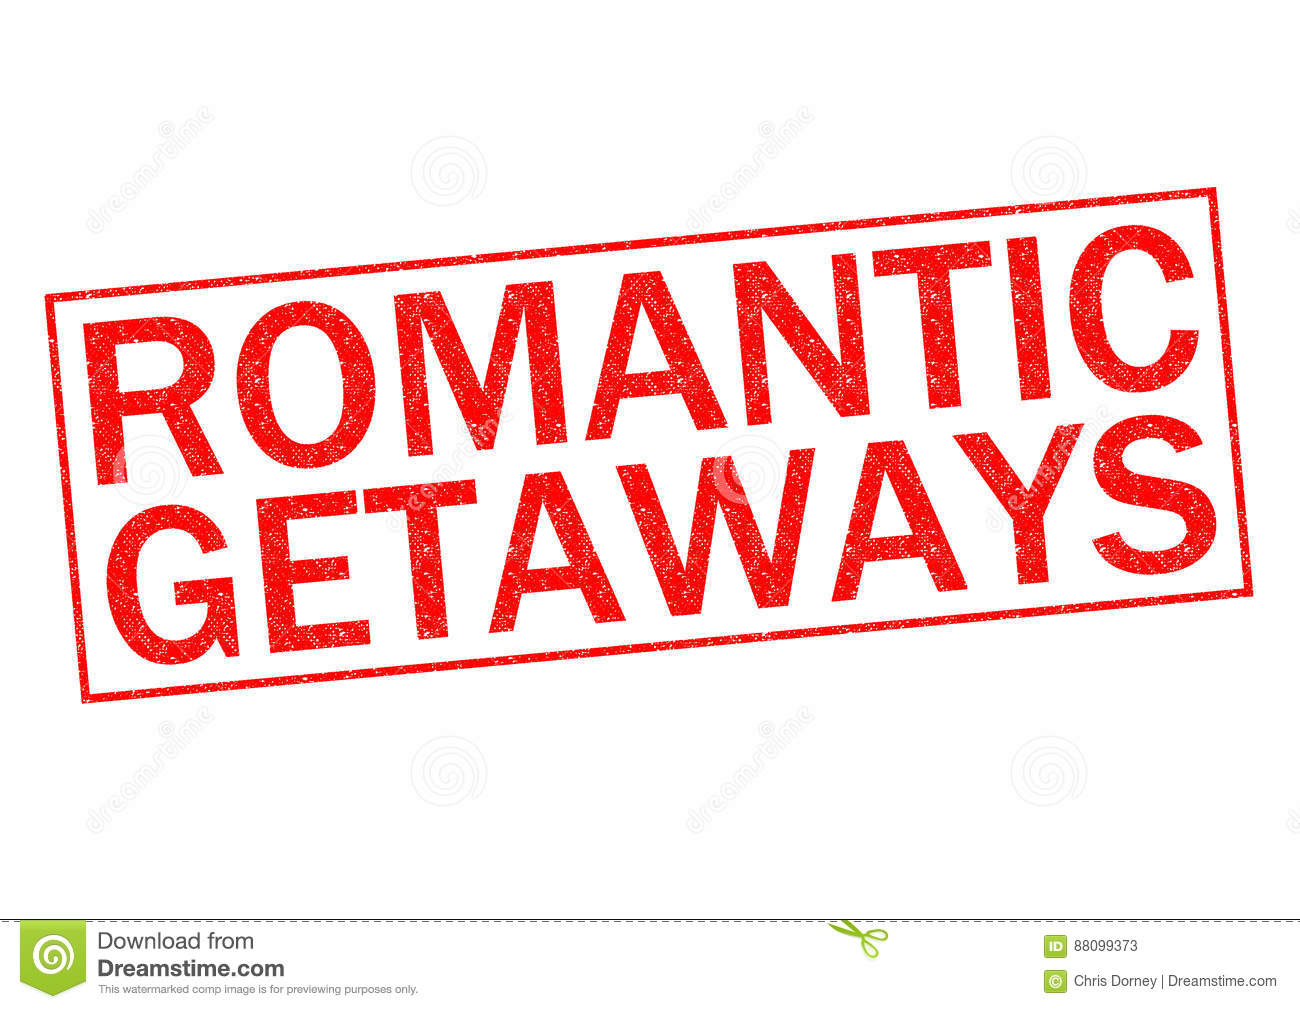 Getaways cartoons illustrations vector stock images for Where to go for a romantic weekend